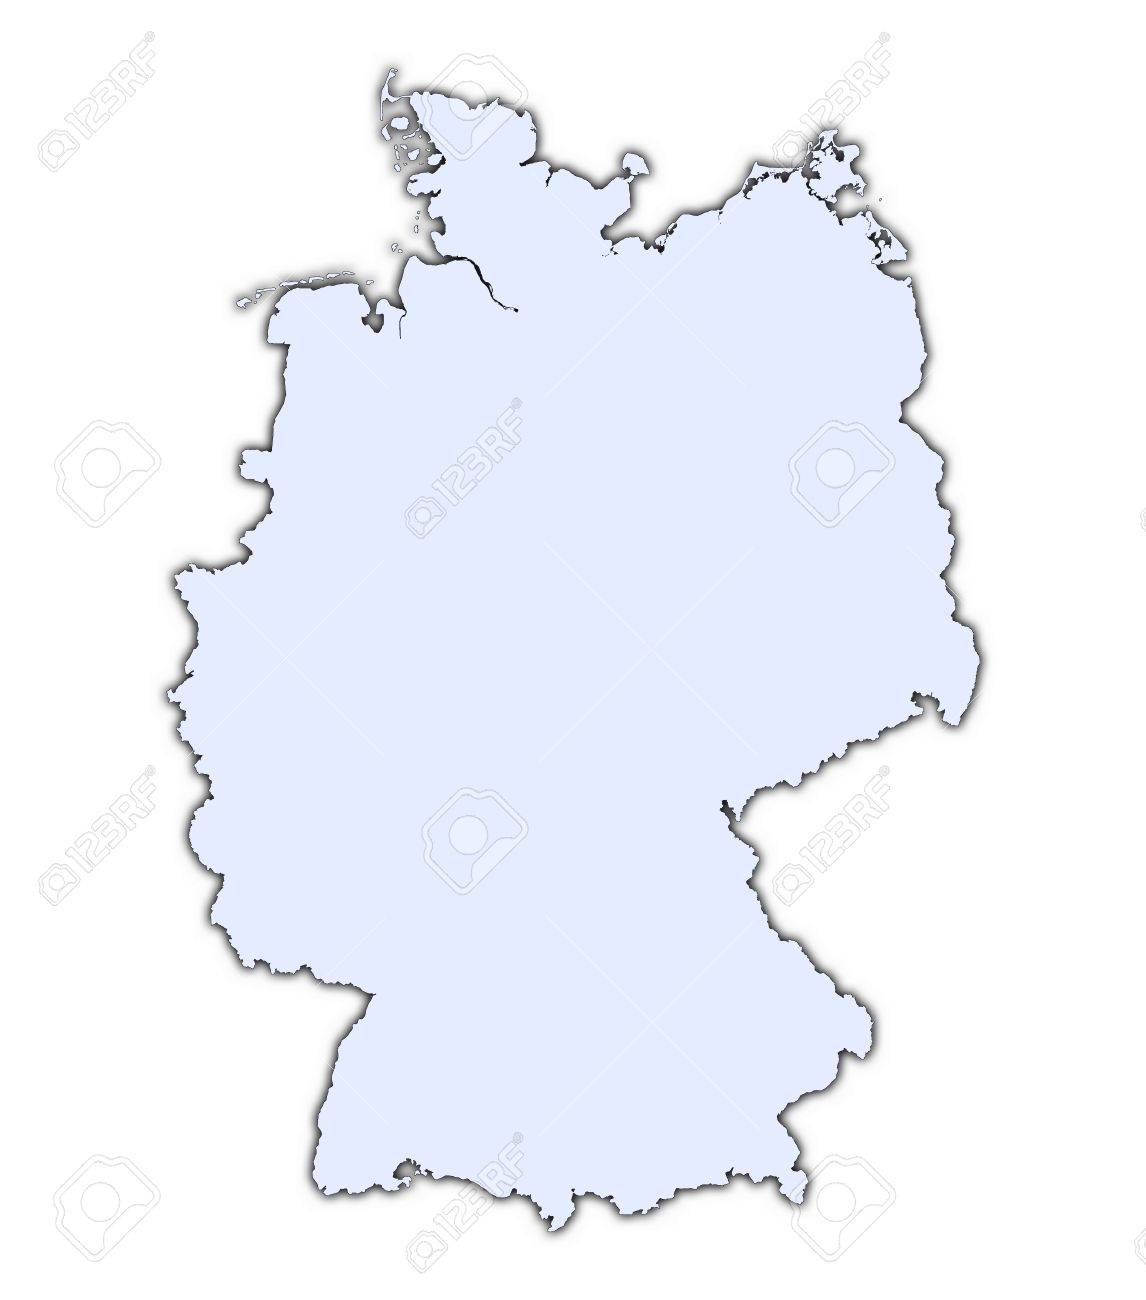 Germany Light Blue Map With Shadow High Resolution Mercator - Germany map high resolution